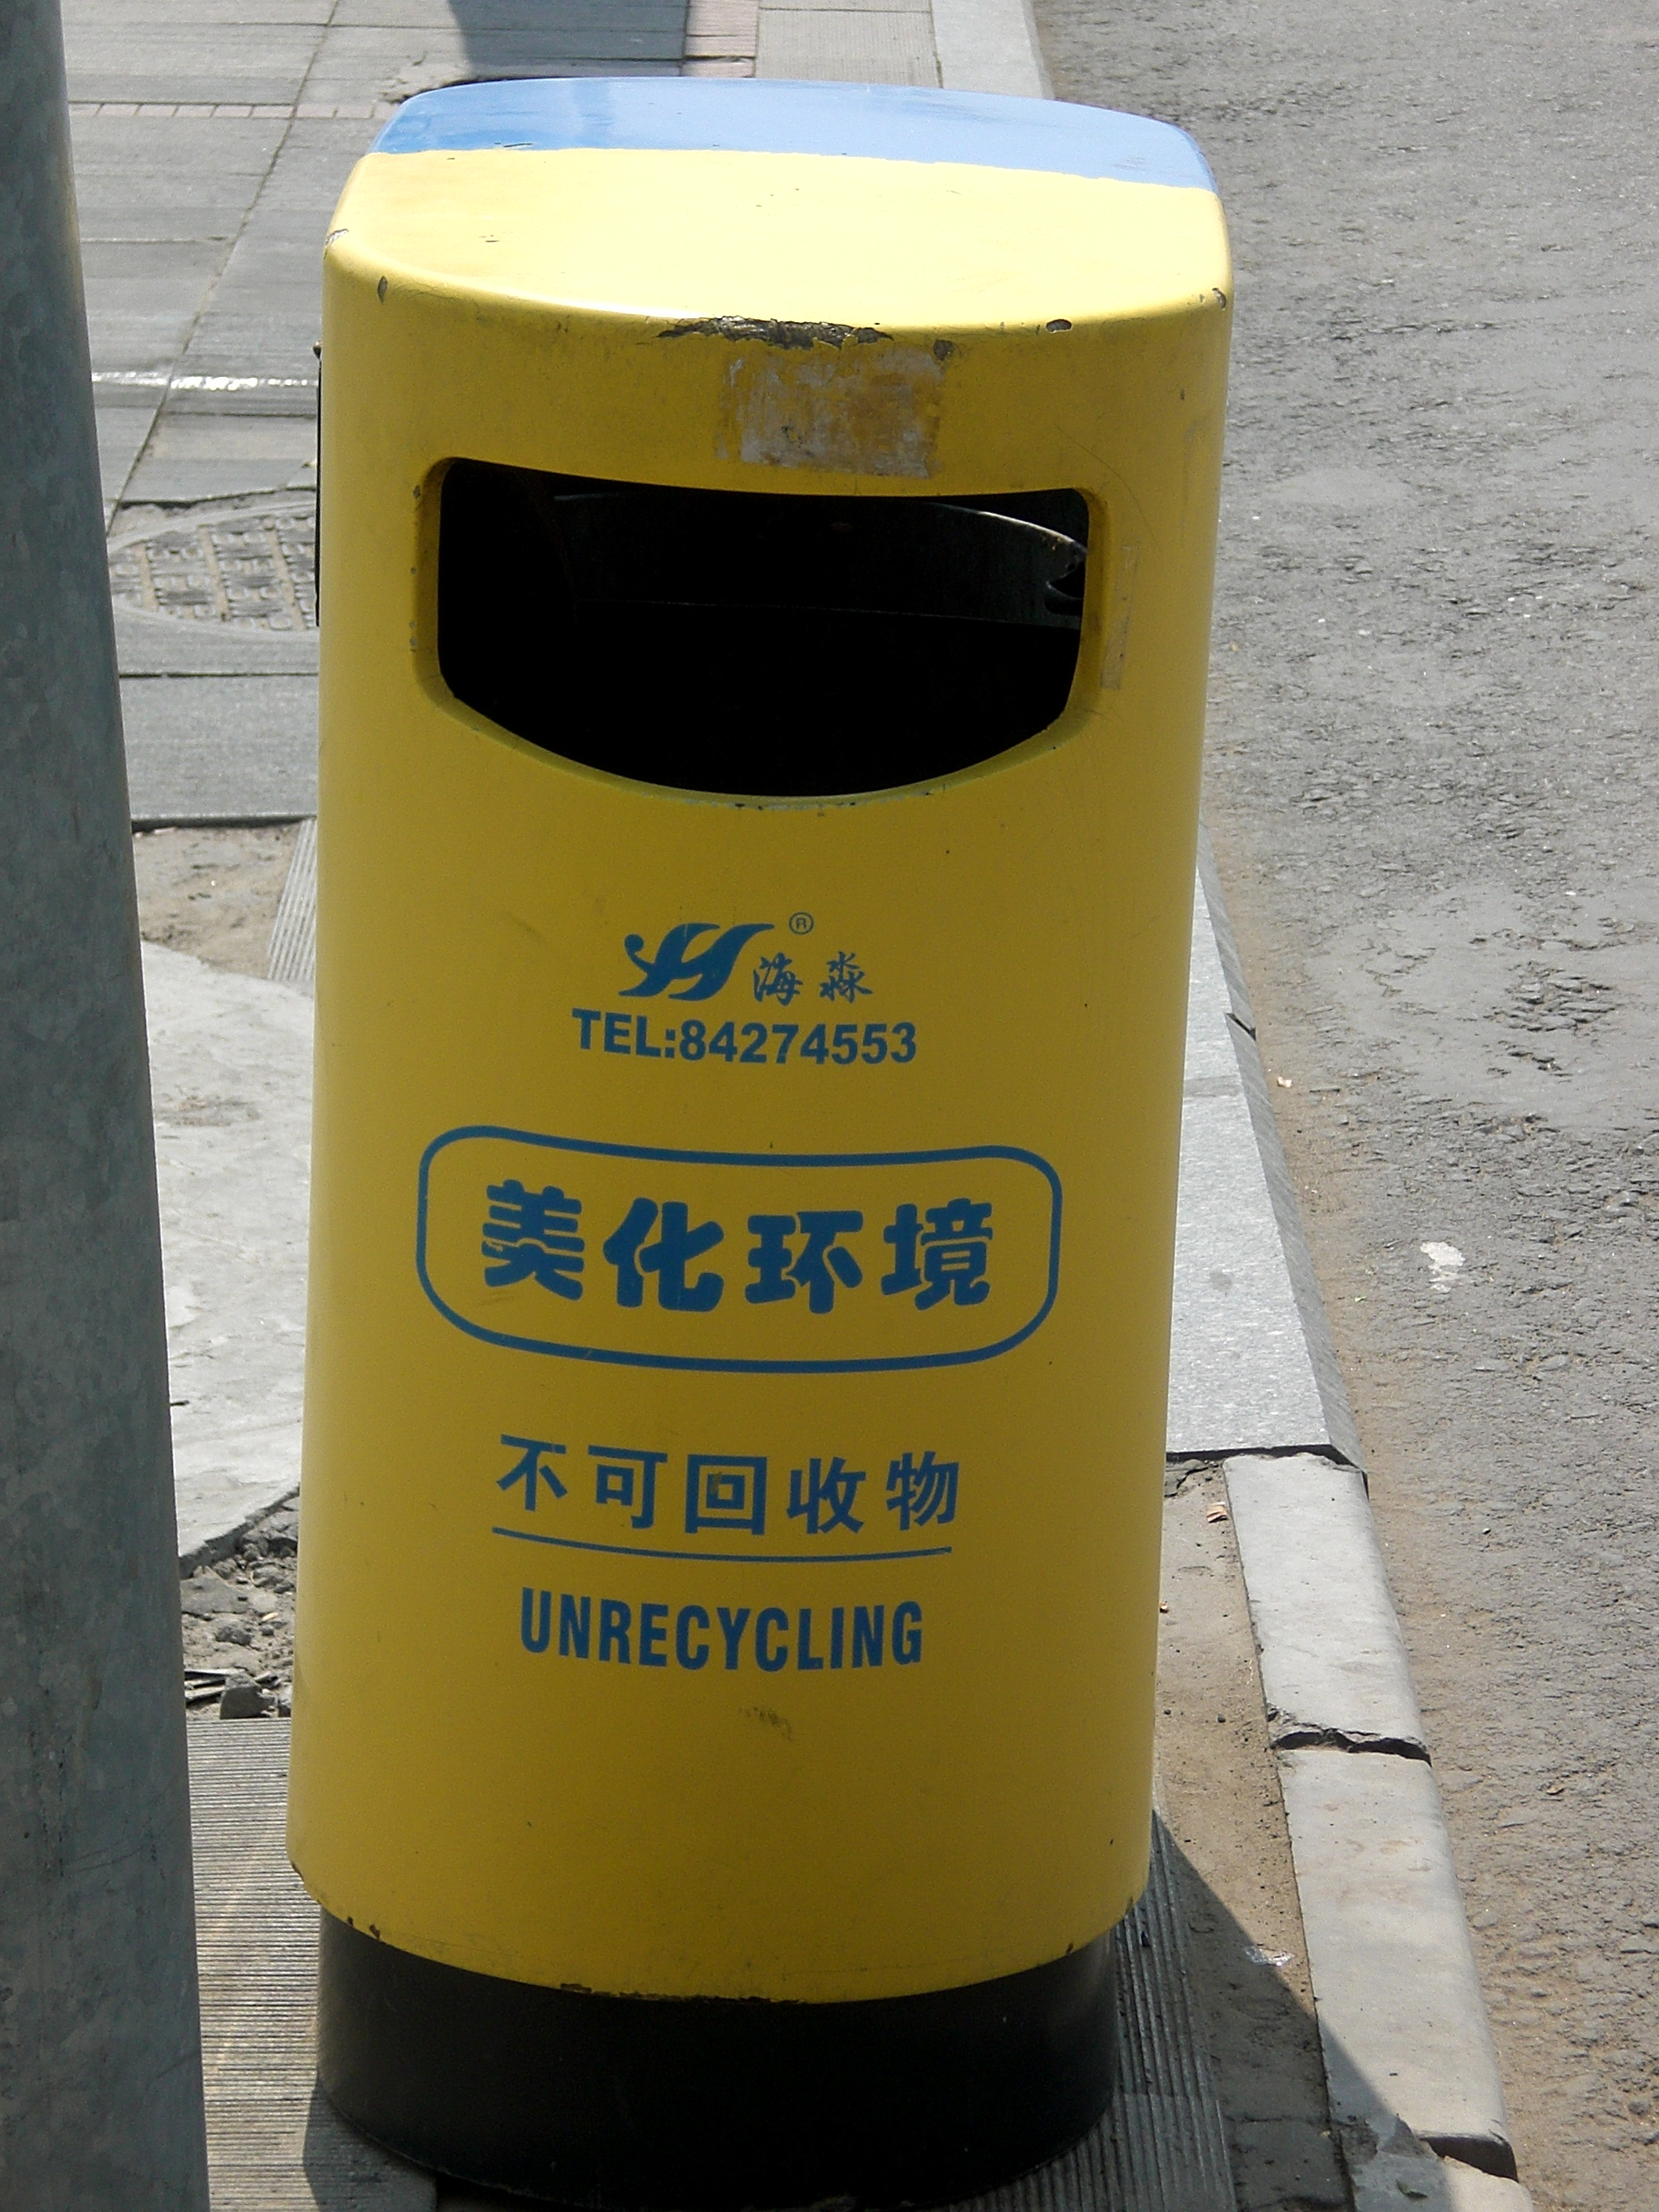 One of those amusing signs you come across when in Asia.....